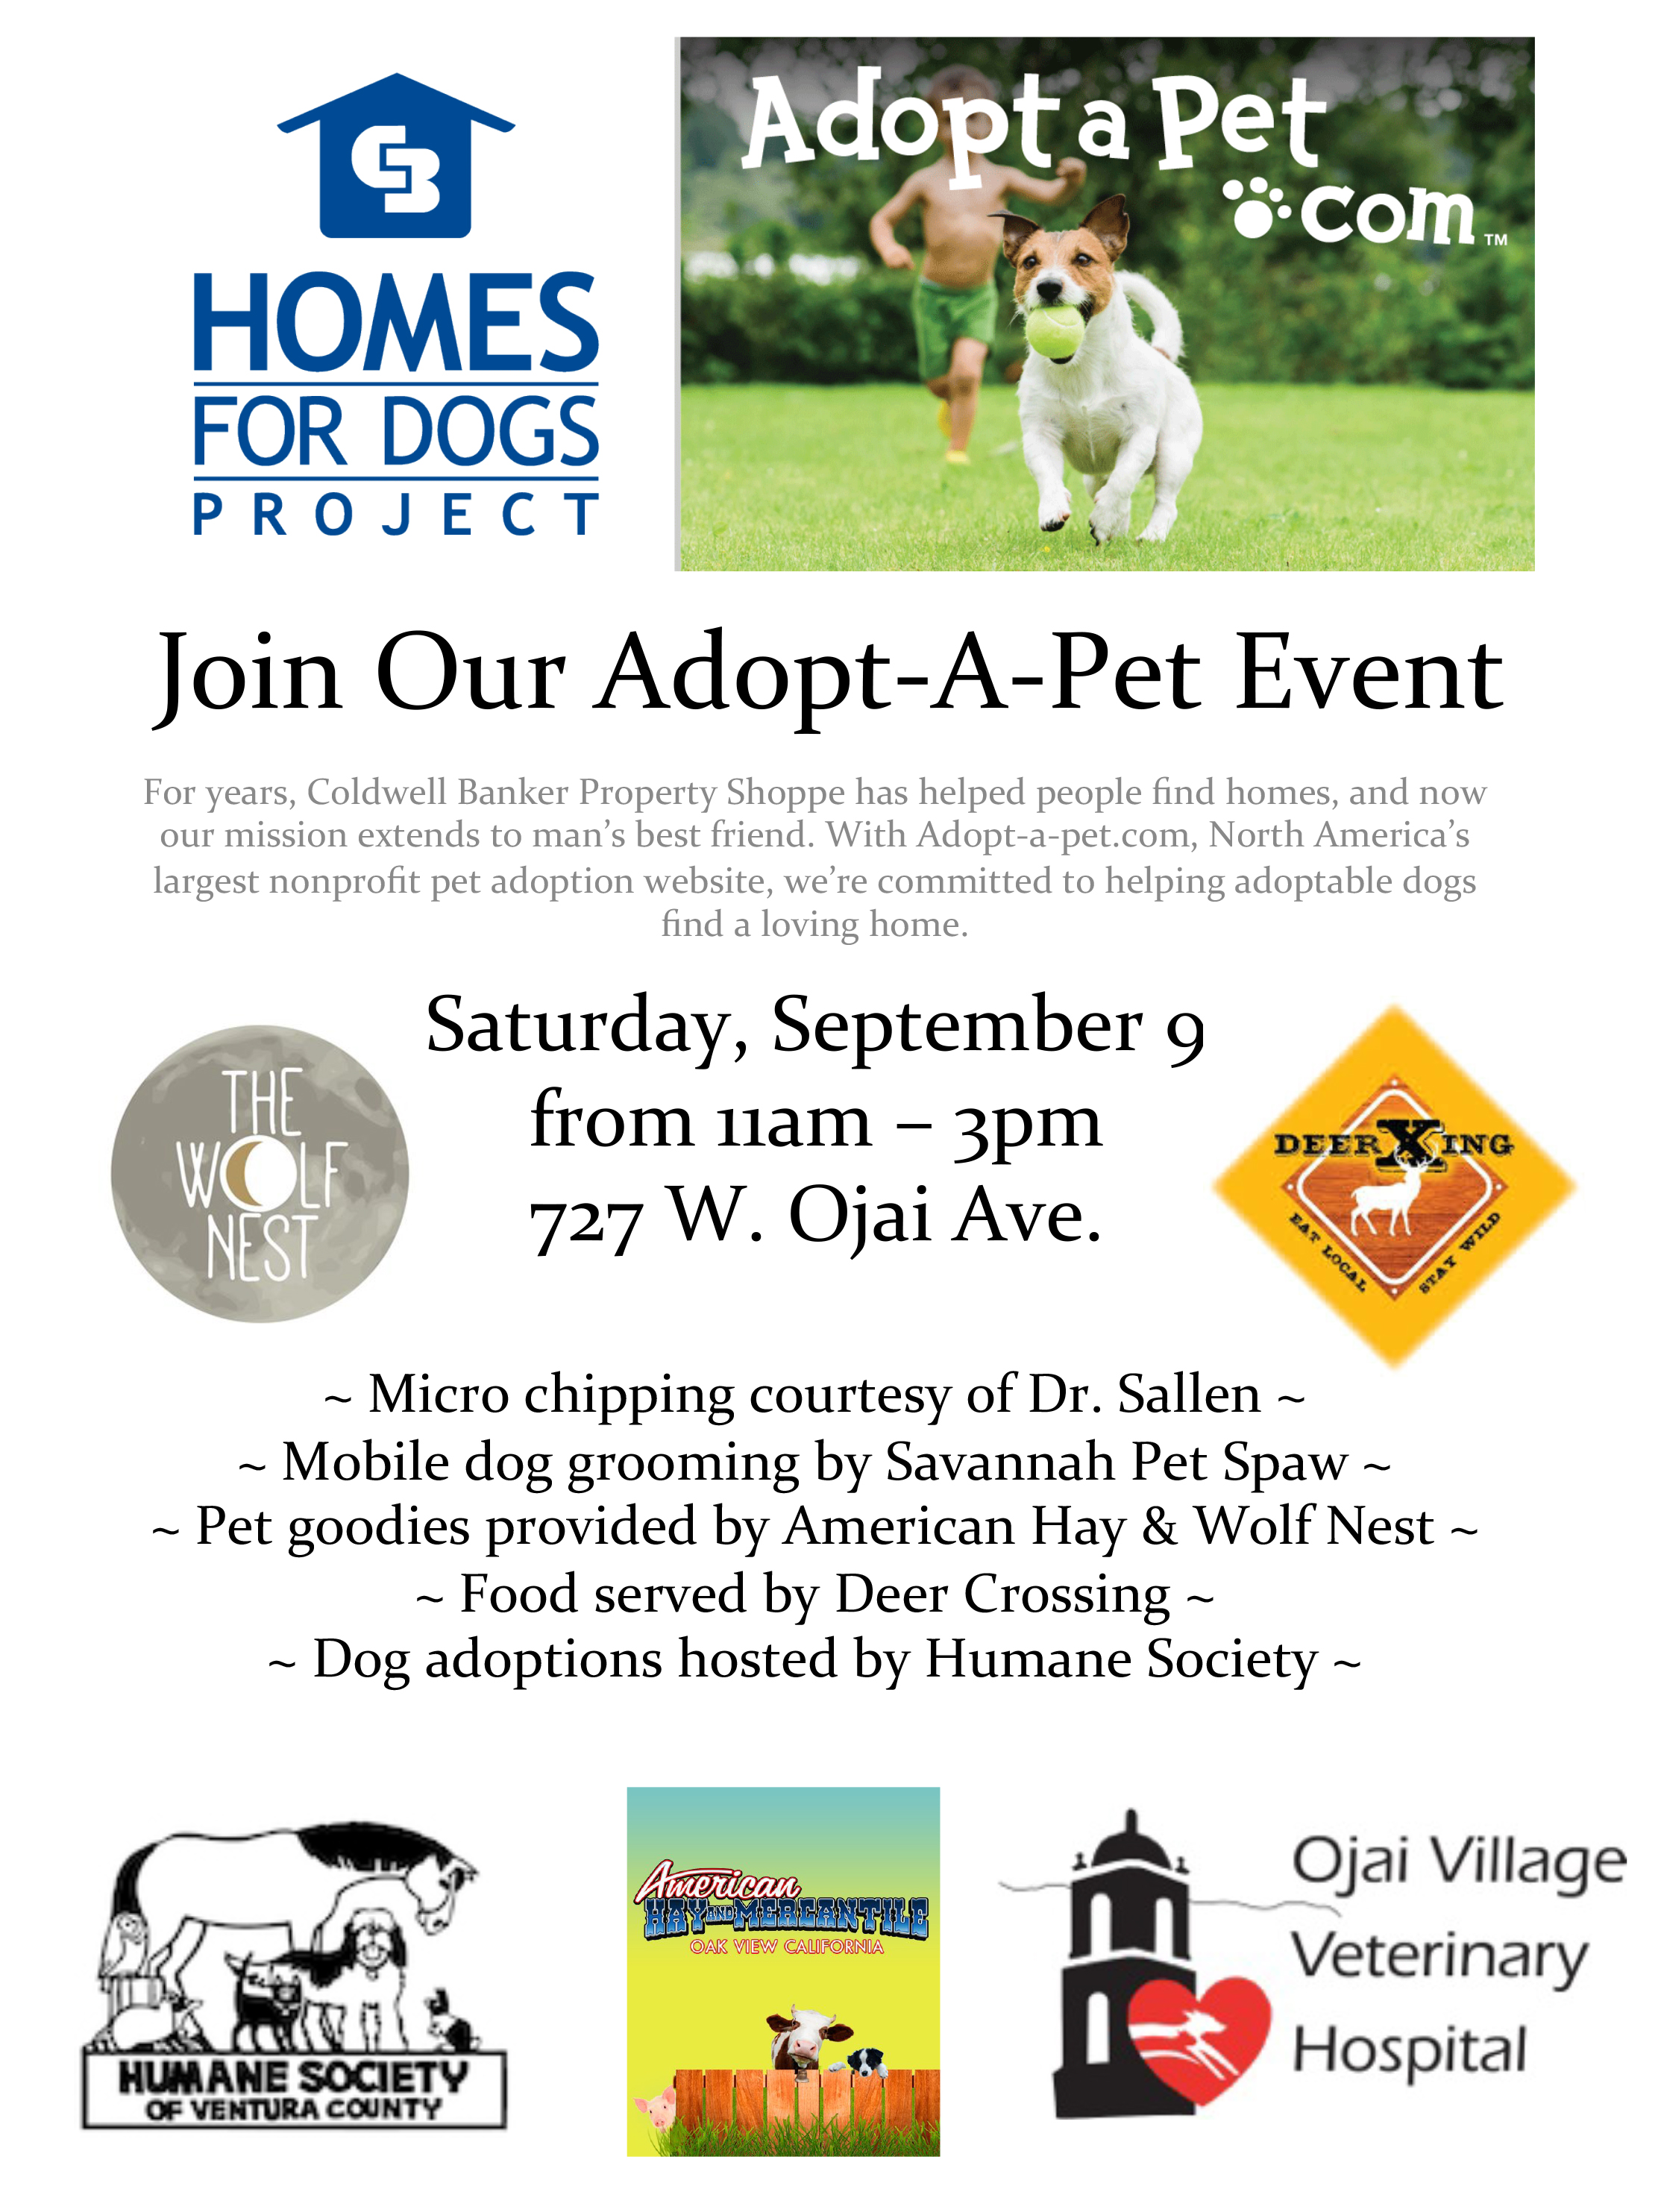 Homes_for_Dogs_Event_Flyer.jpg